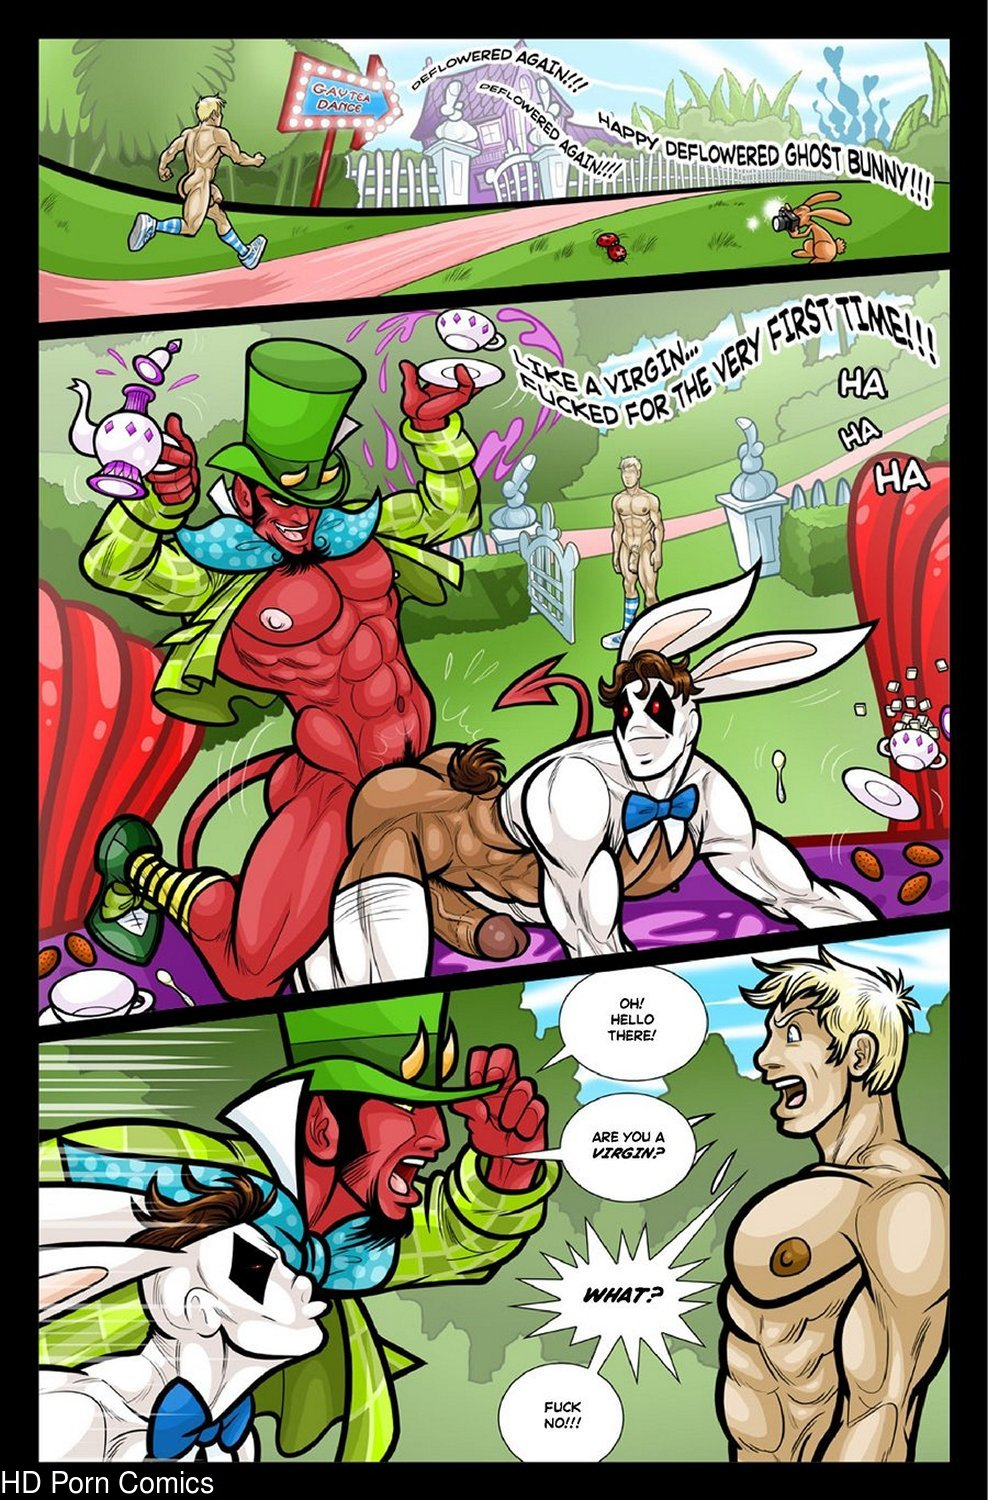 Alex In Bonerland gay furry comic